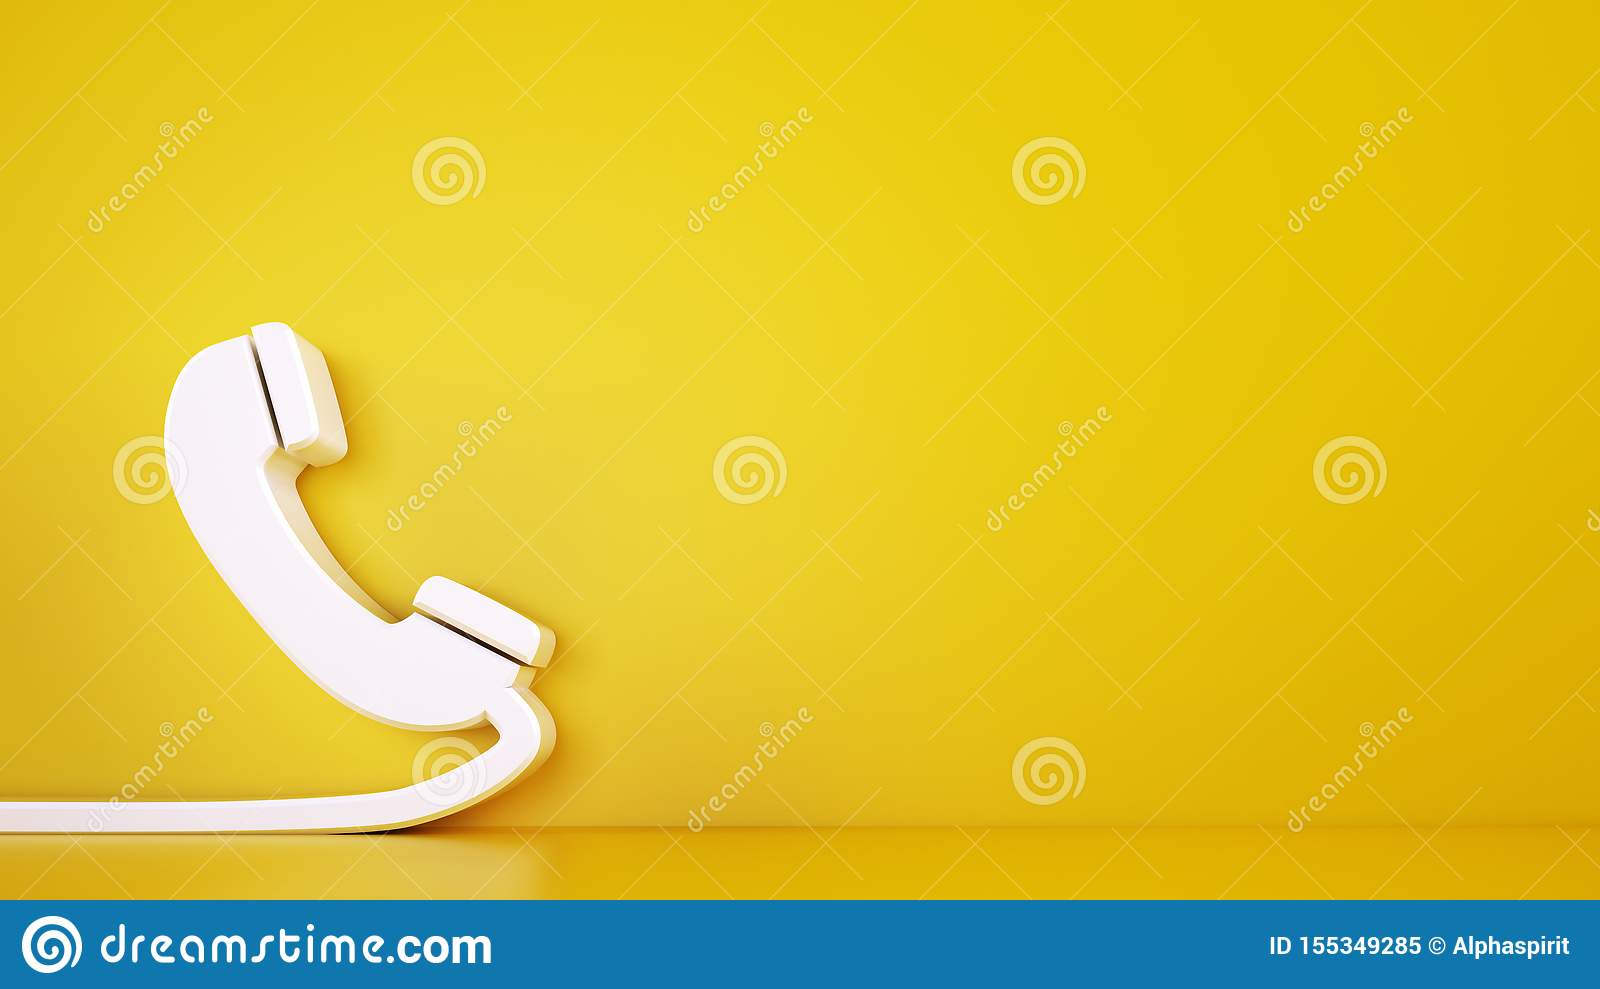 3D icon of a big telephone handset on yellow background. Rendering